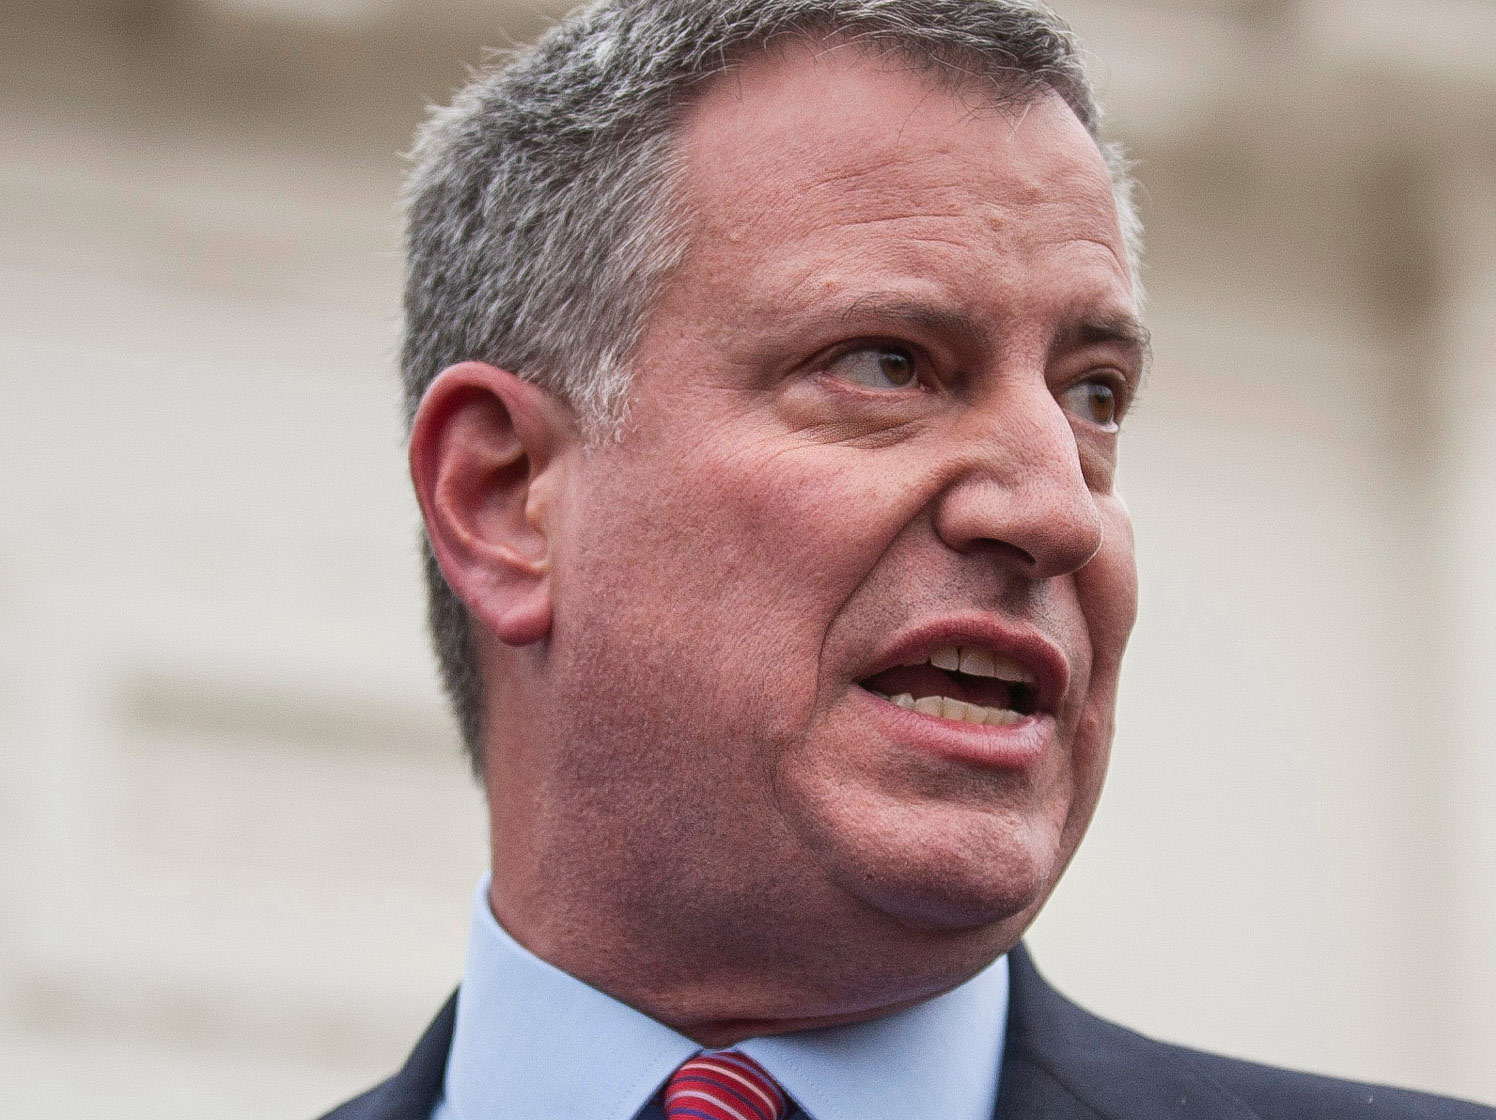 bill de blasio - photo #39